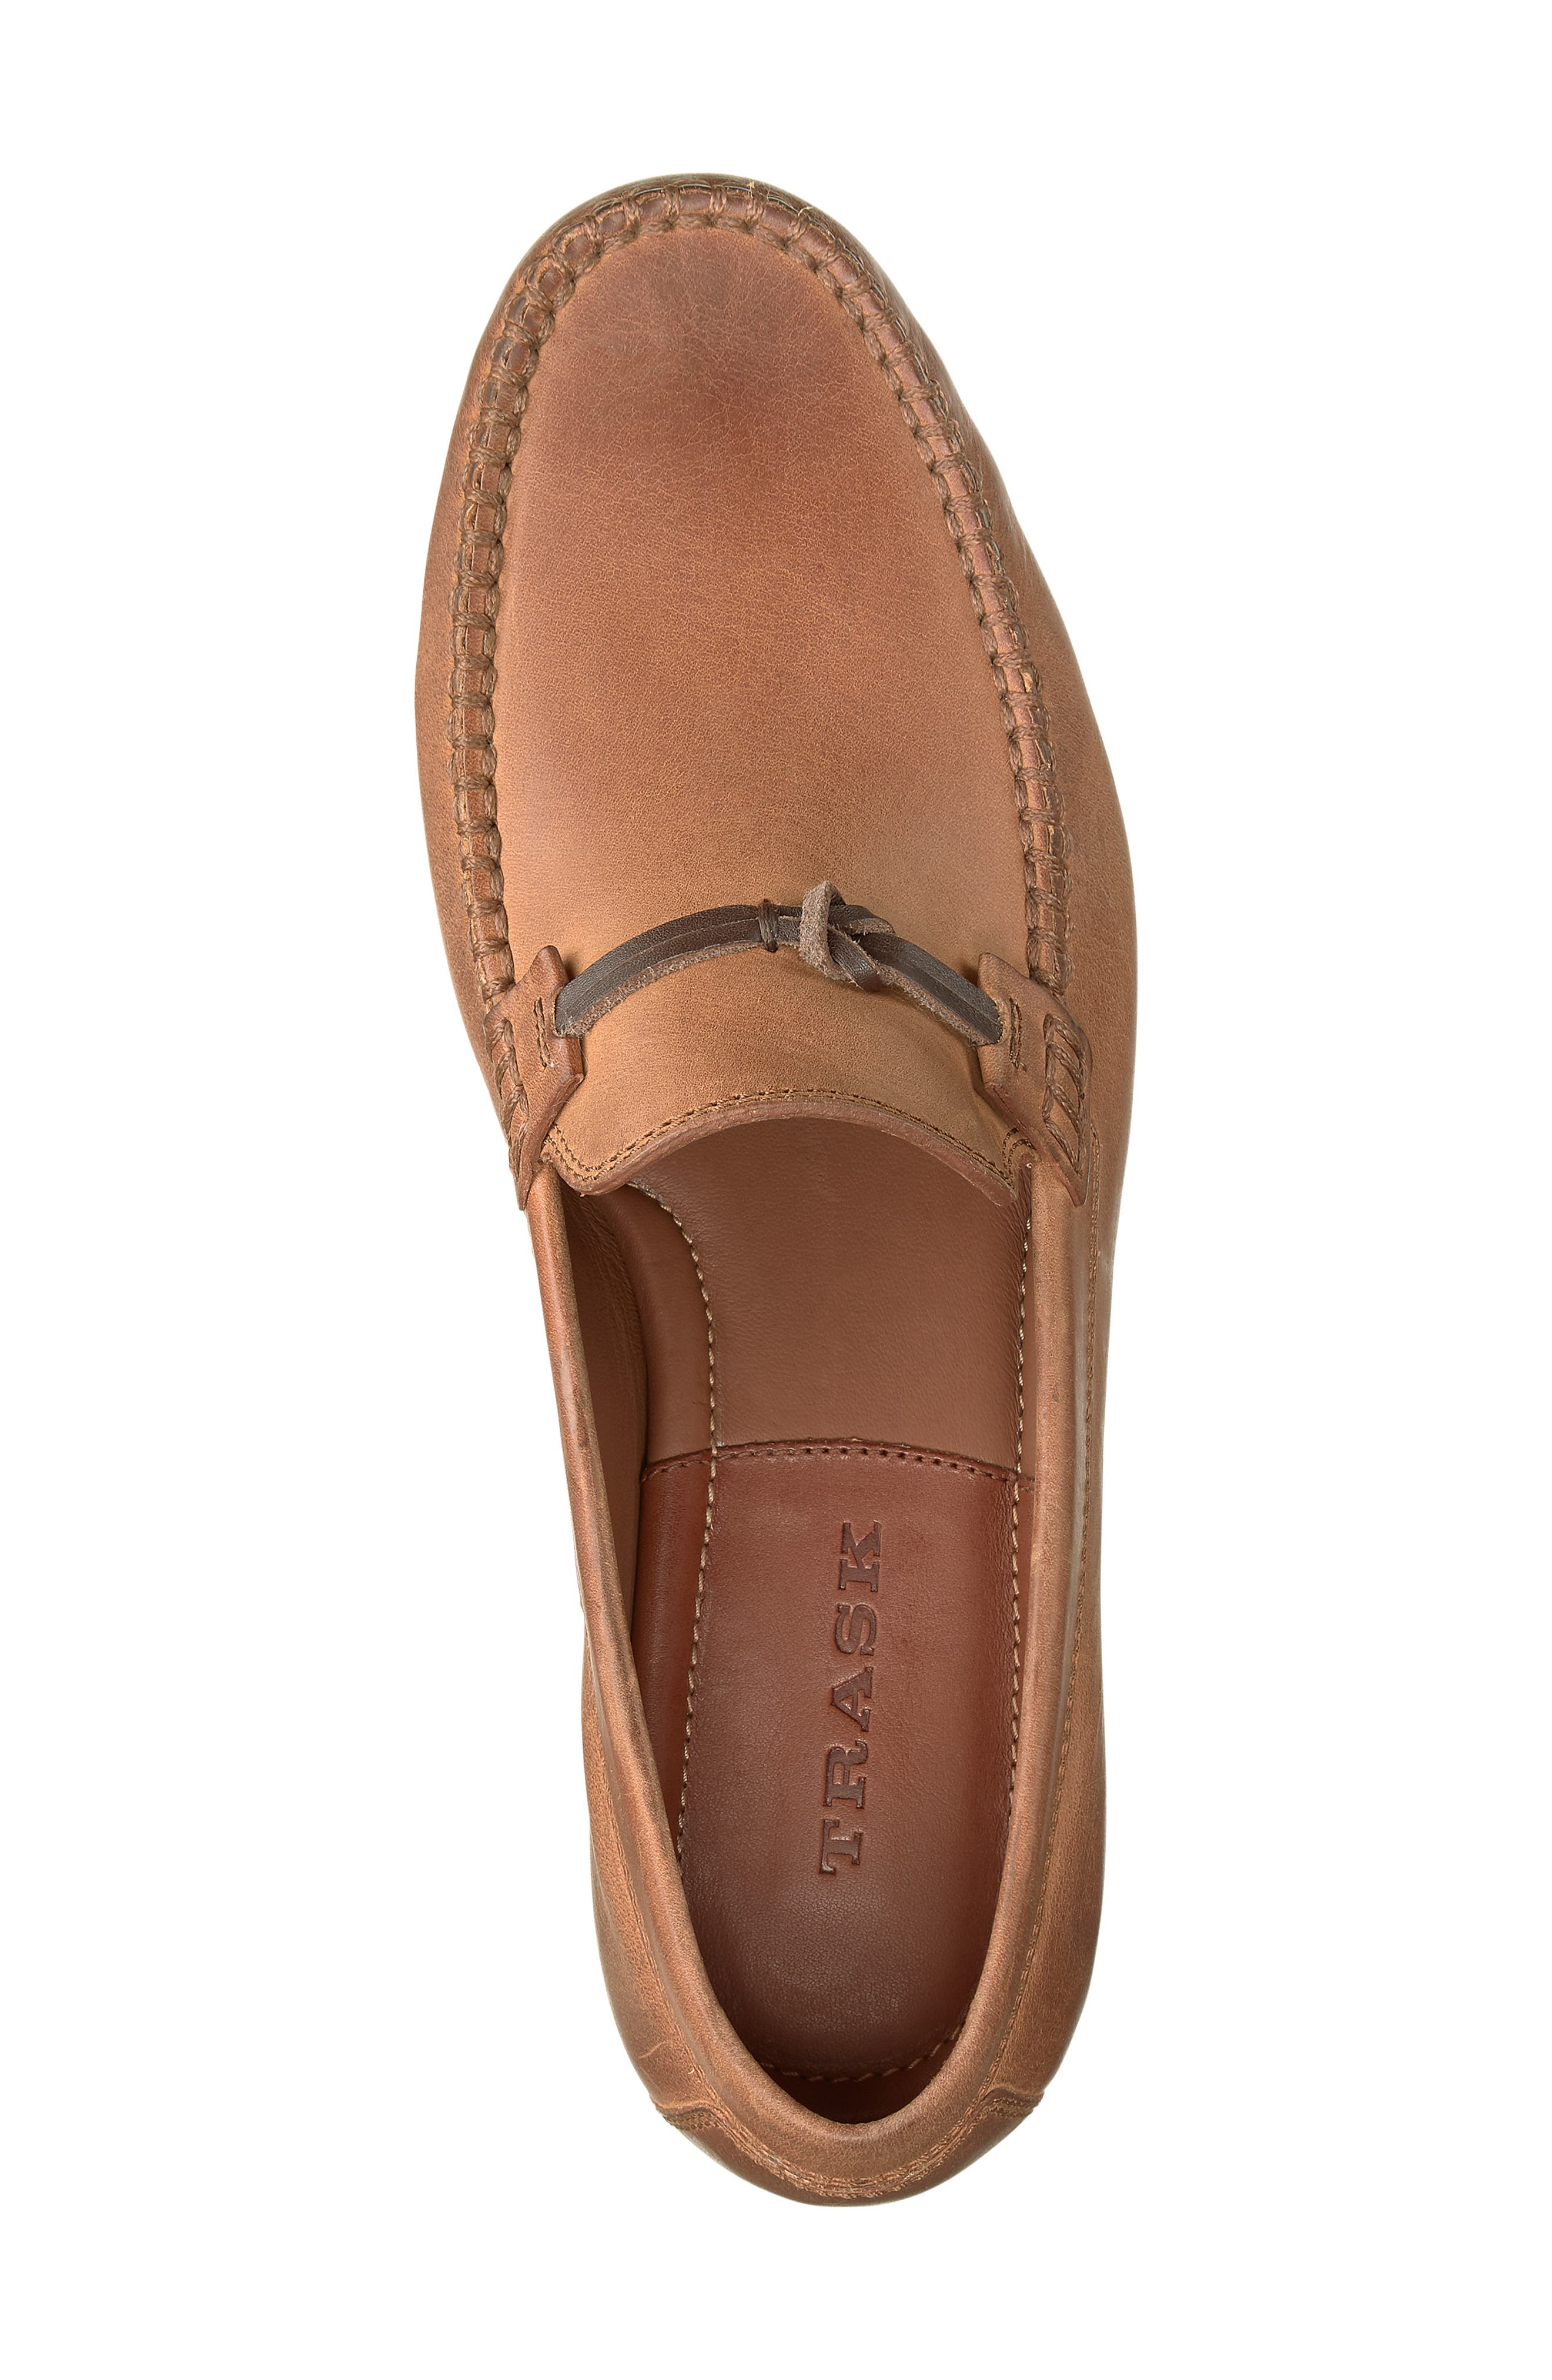 'Sawyer' Loafer,                             Alternate thumbnail 5, color,                             TAN LEATHER